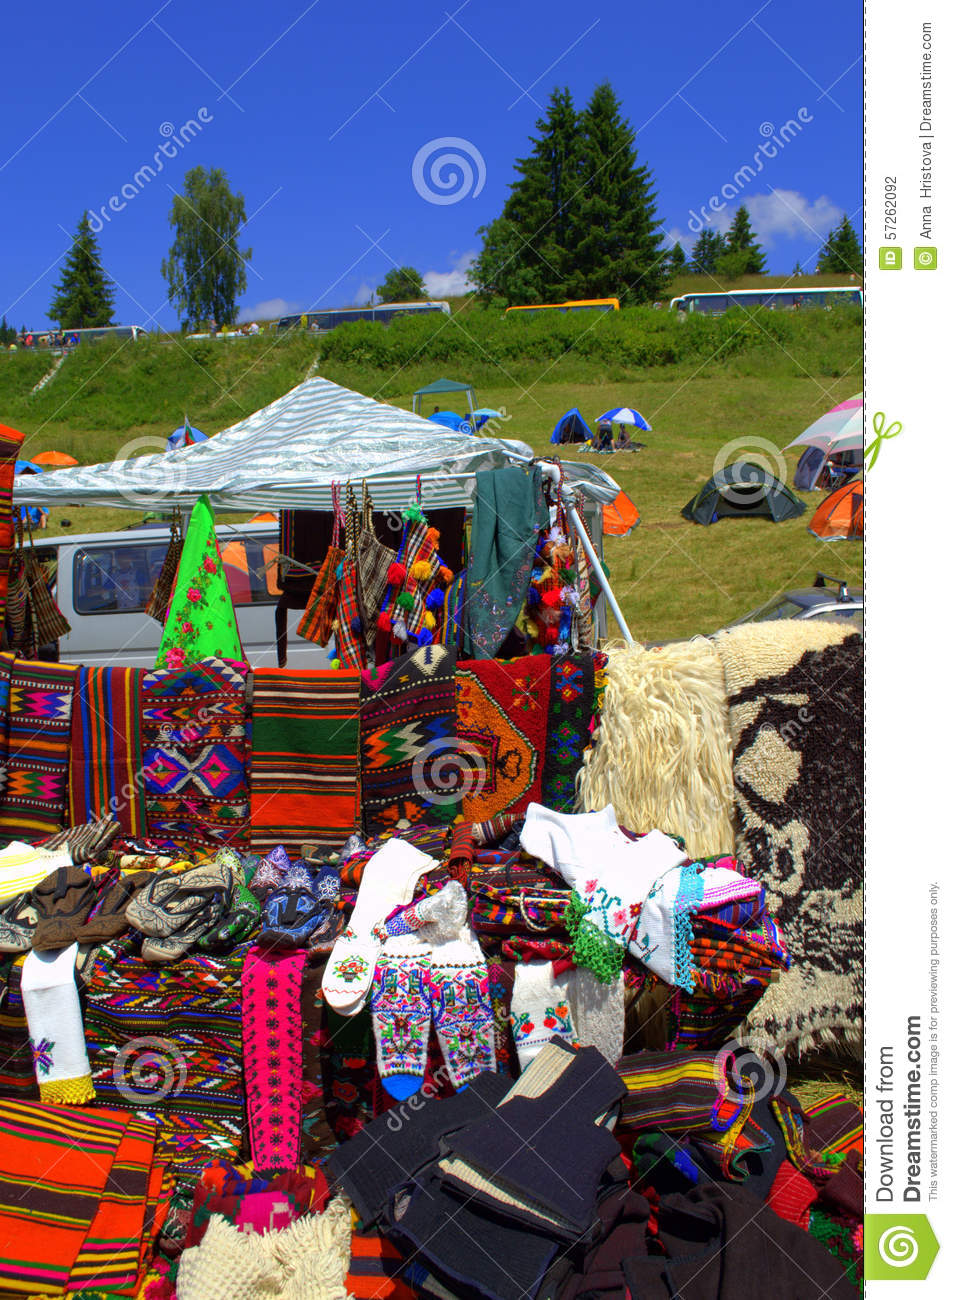 Colorful Authentic Handmade Rodopian Objects Stock Photo